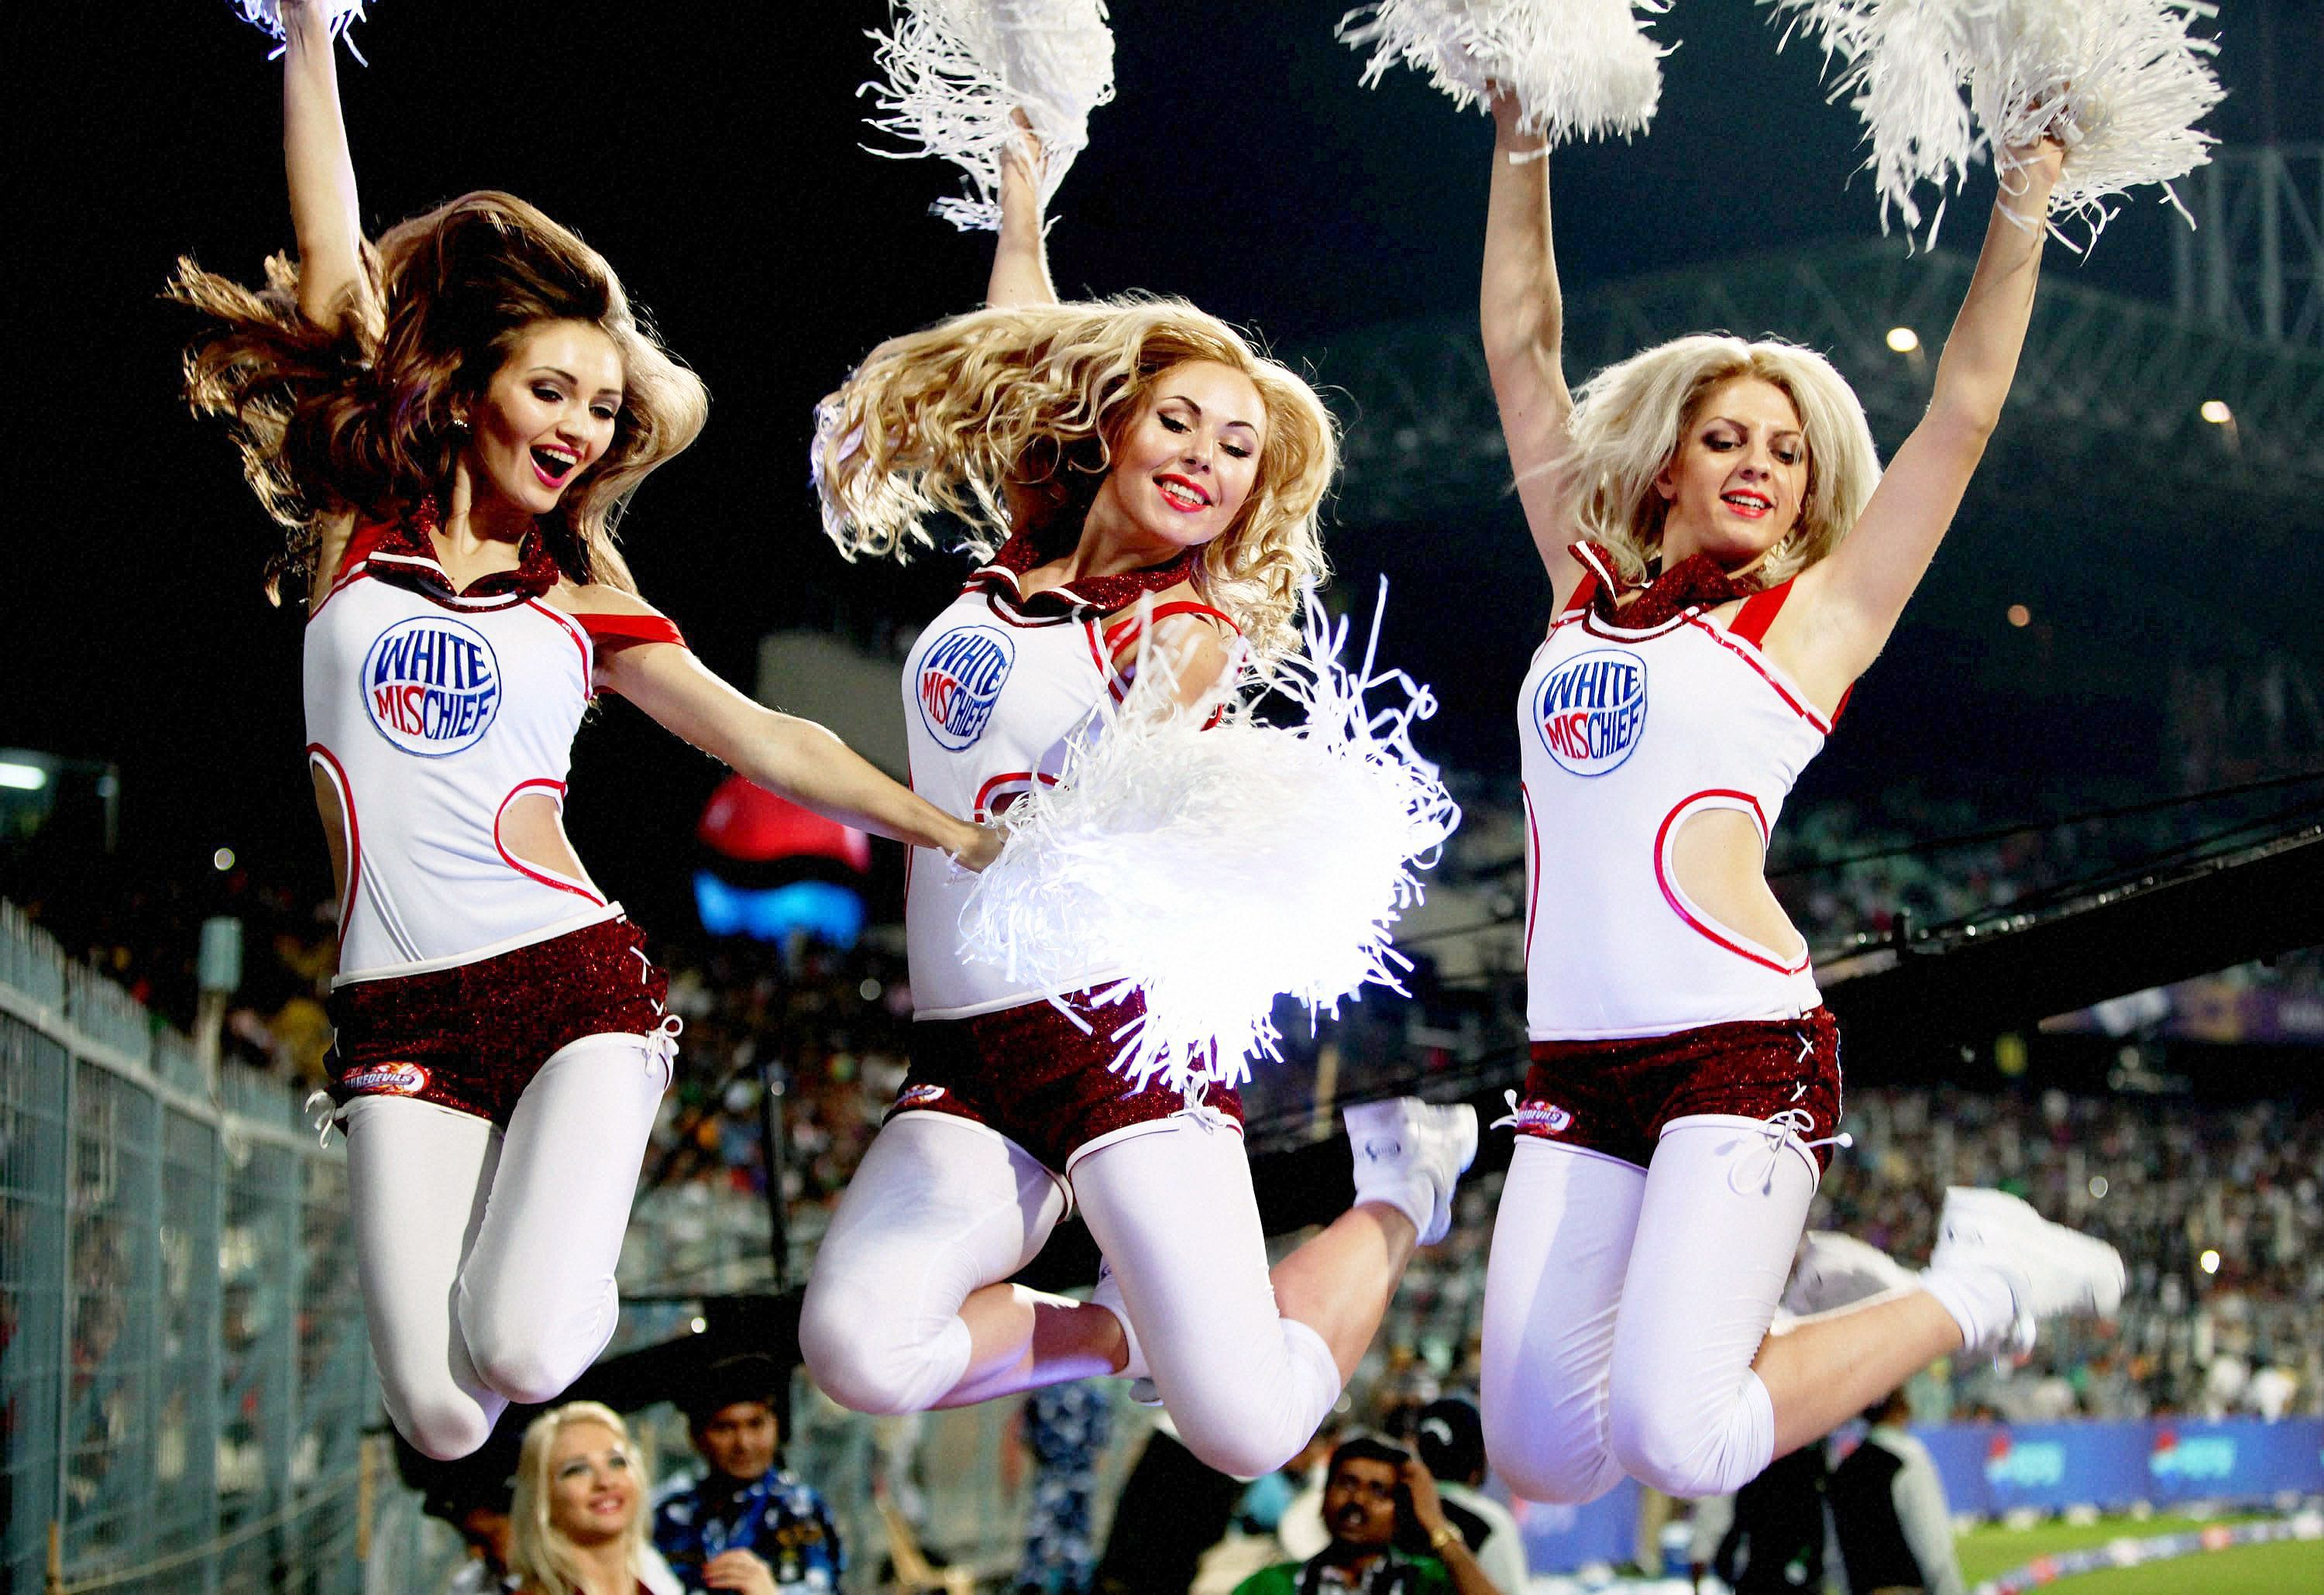 Cheerleaders in Kolkata